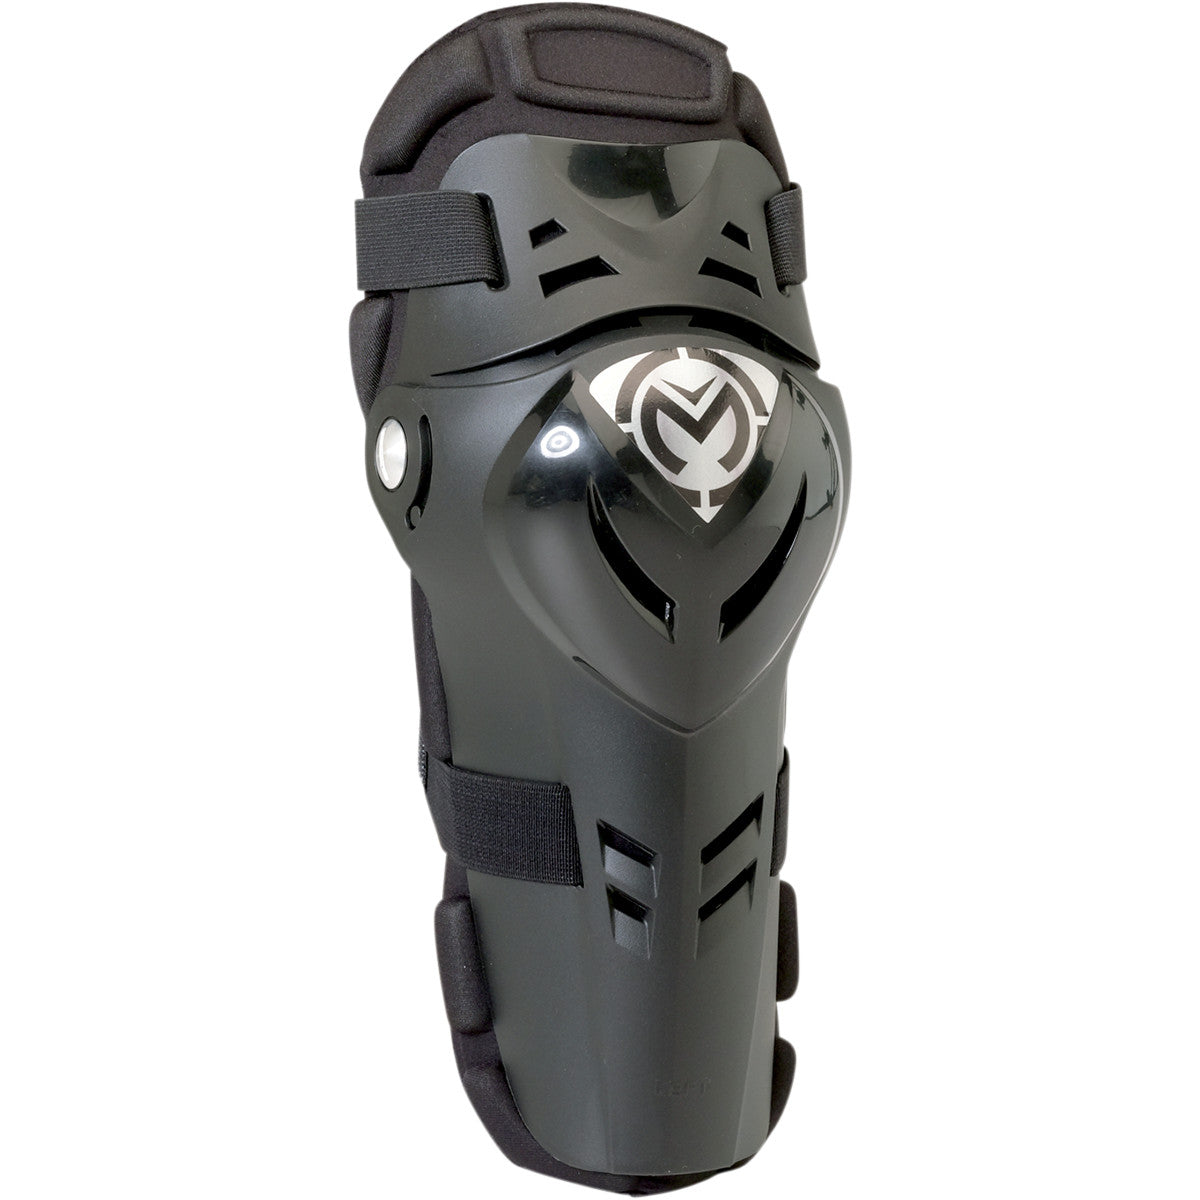 MOOSE Youth XCR Kneeguards